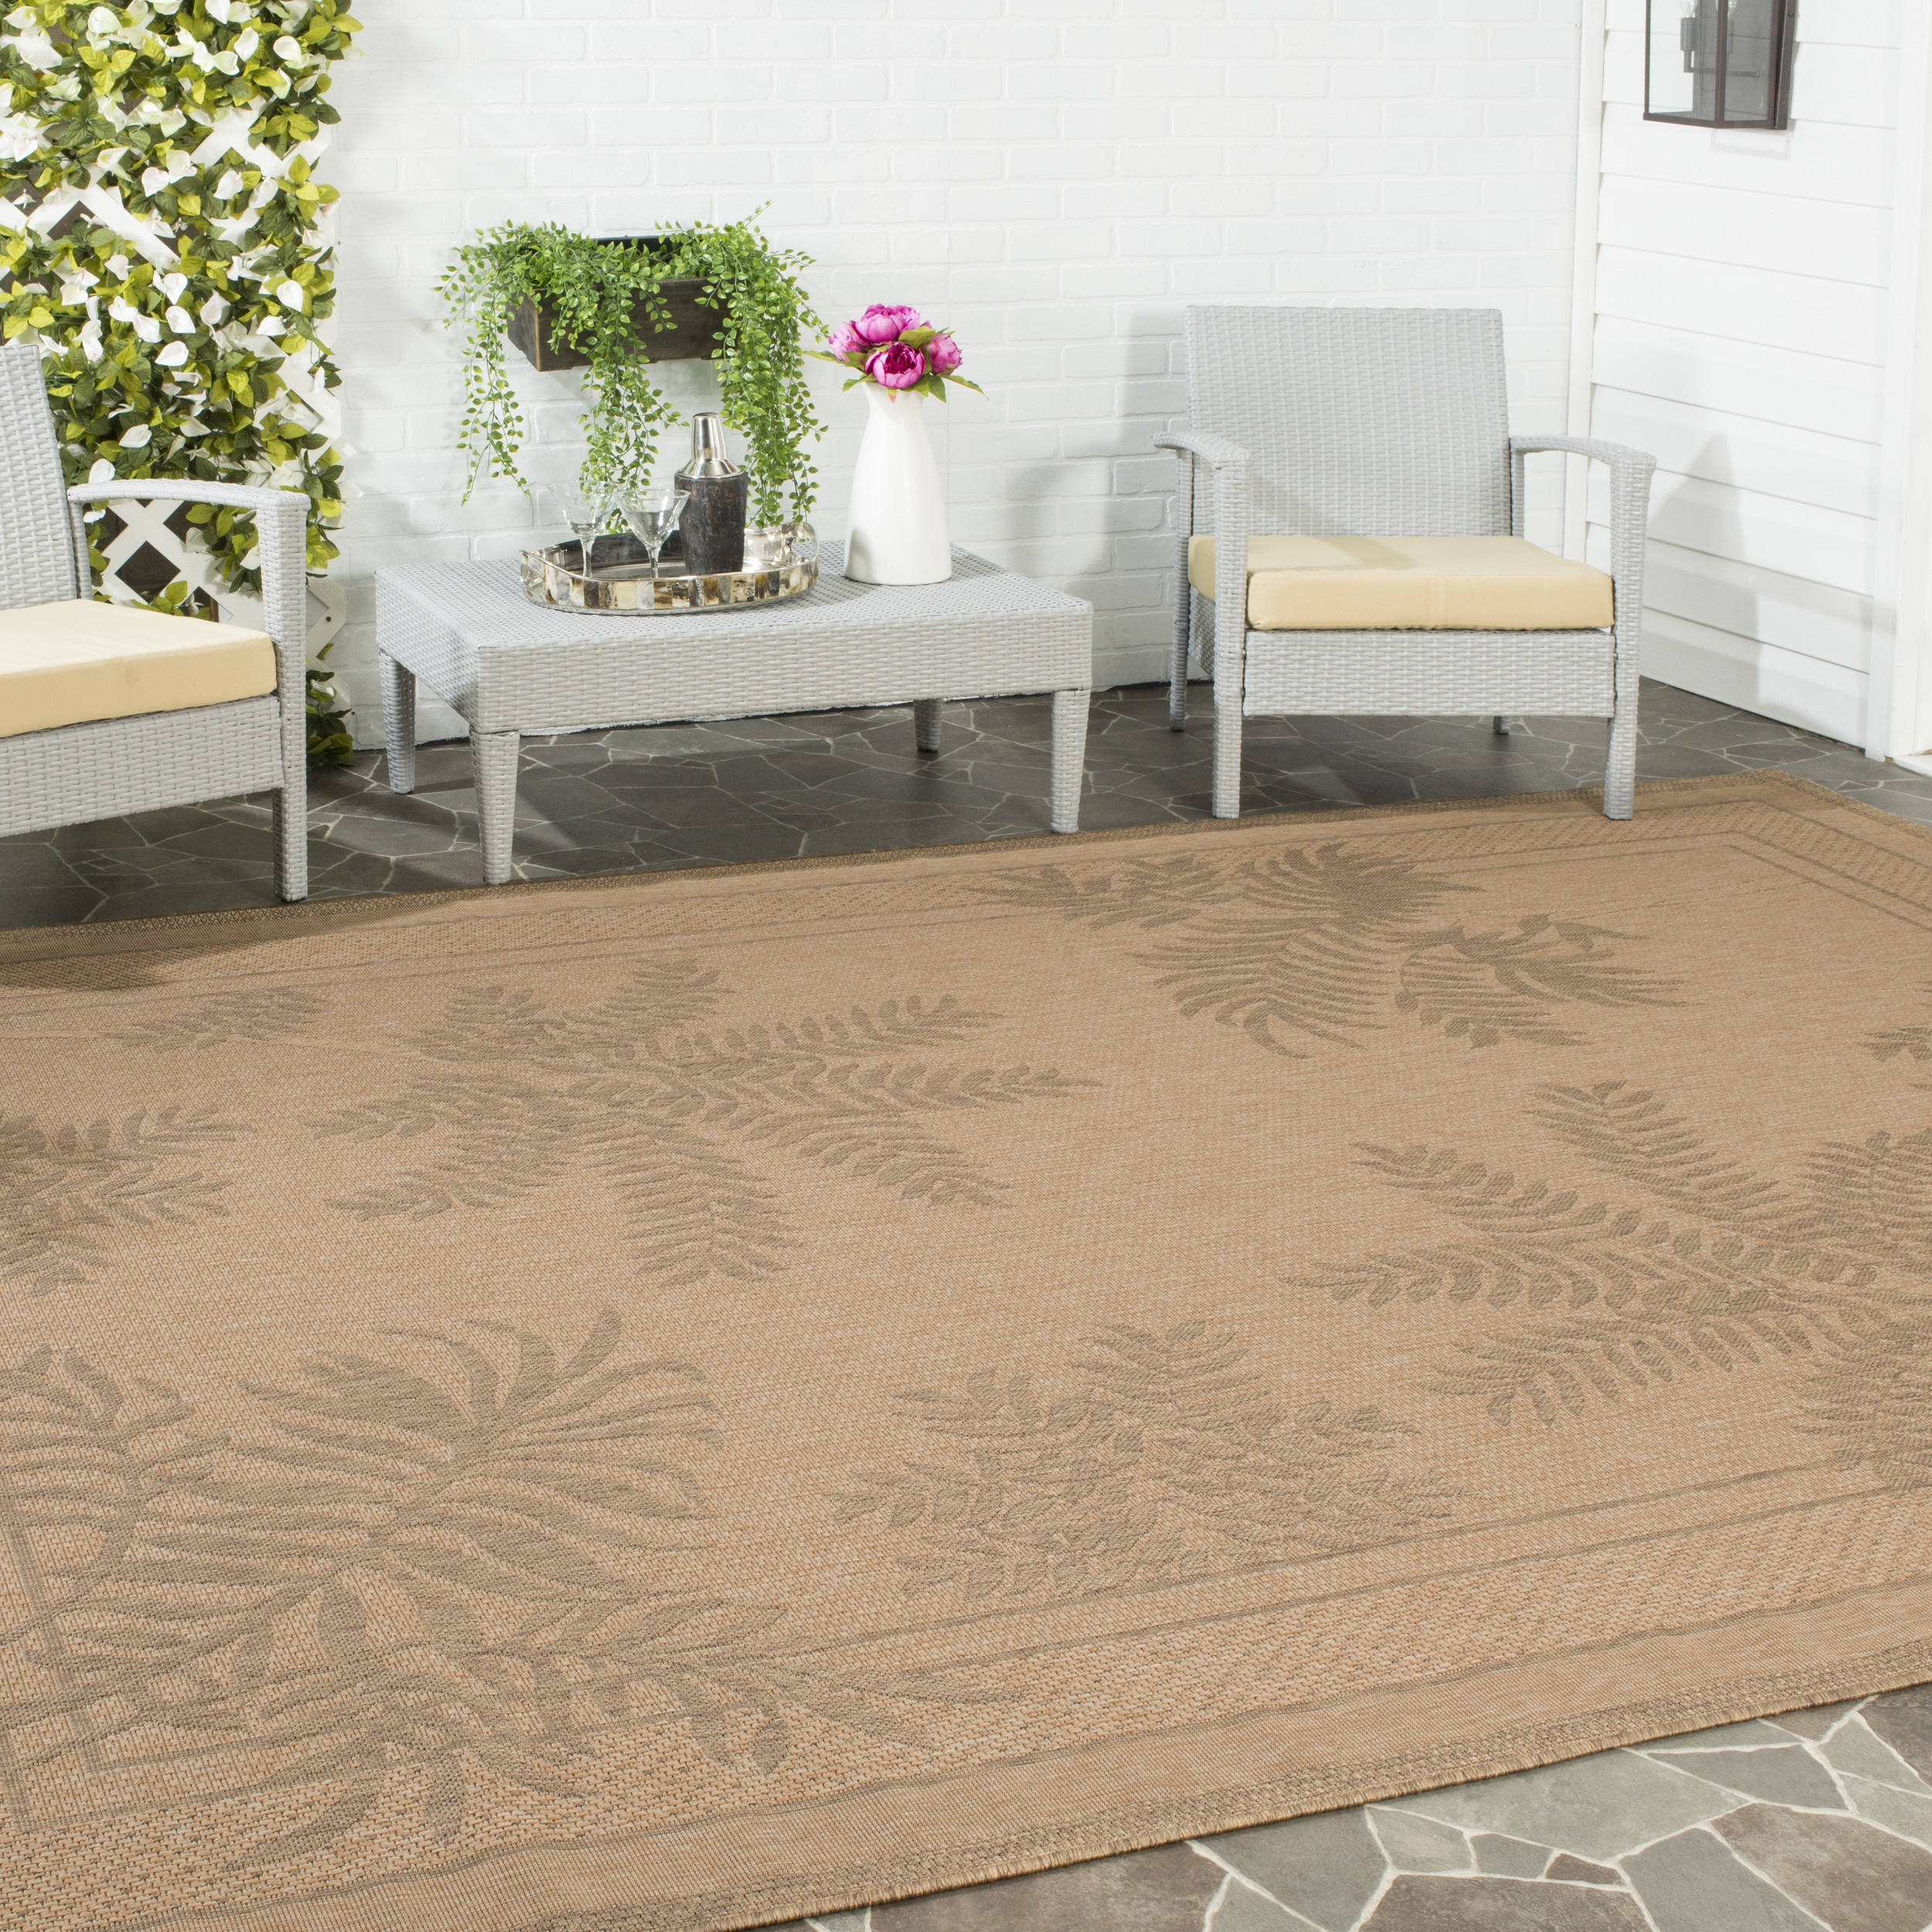 Safavieh Courtyard Safavieh Courtyard Annabelle Floral Indoor Outdoor Area Rug Or Runner